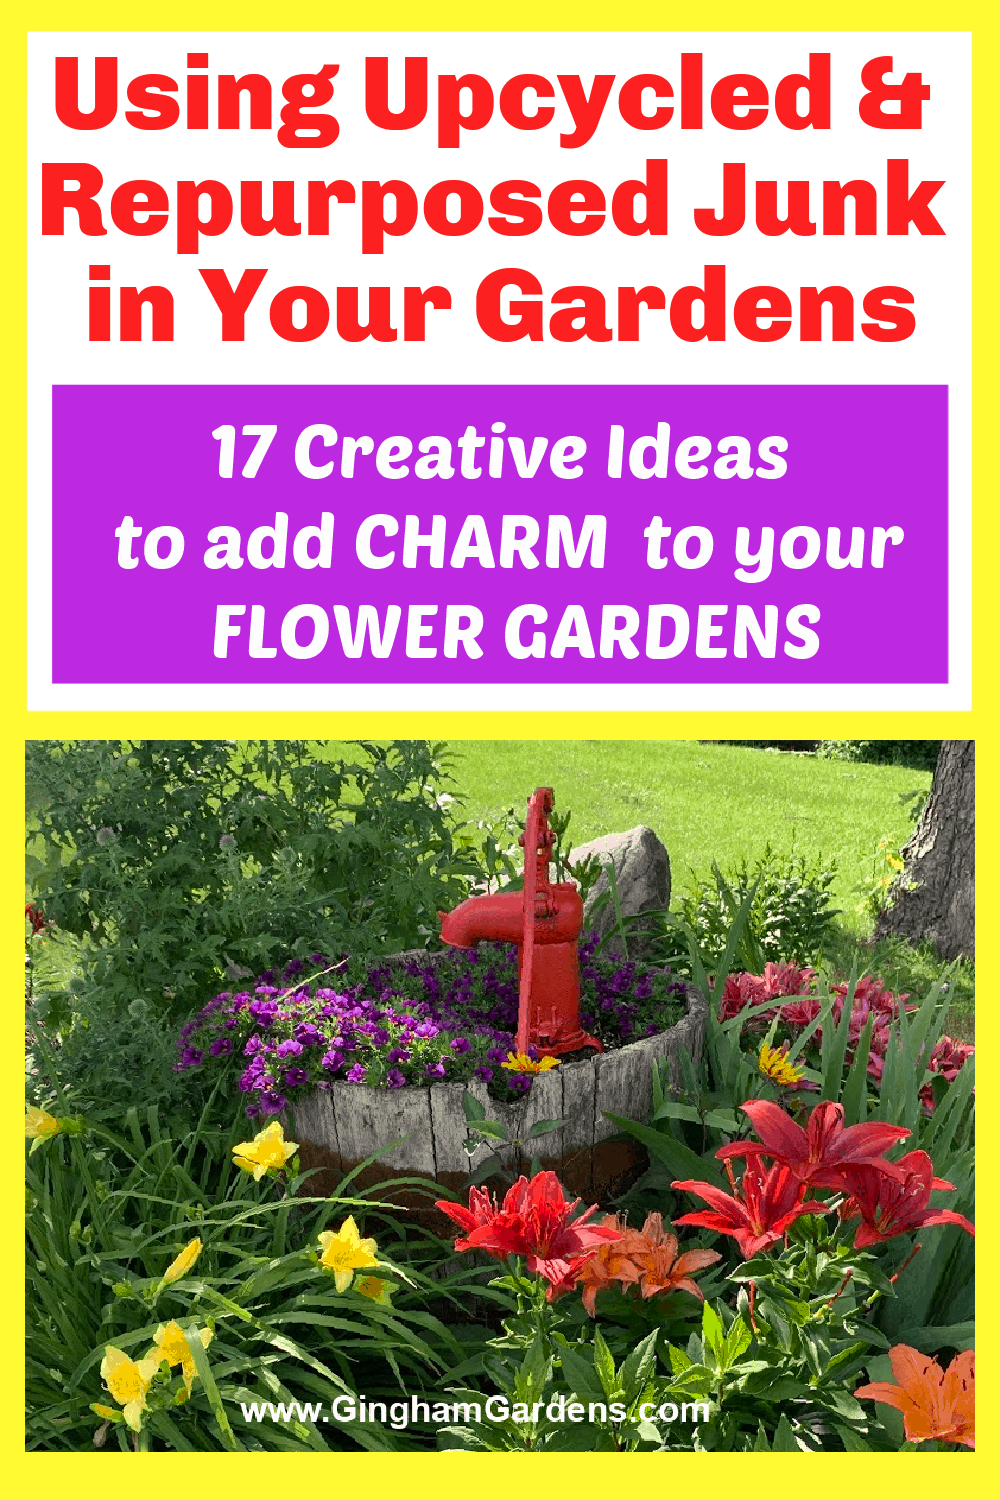 Image of a flower garden with text overlay - Using Upcycled & Repurposed Junk in Your Gardens